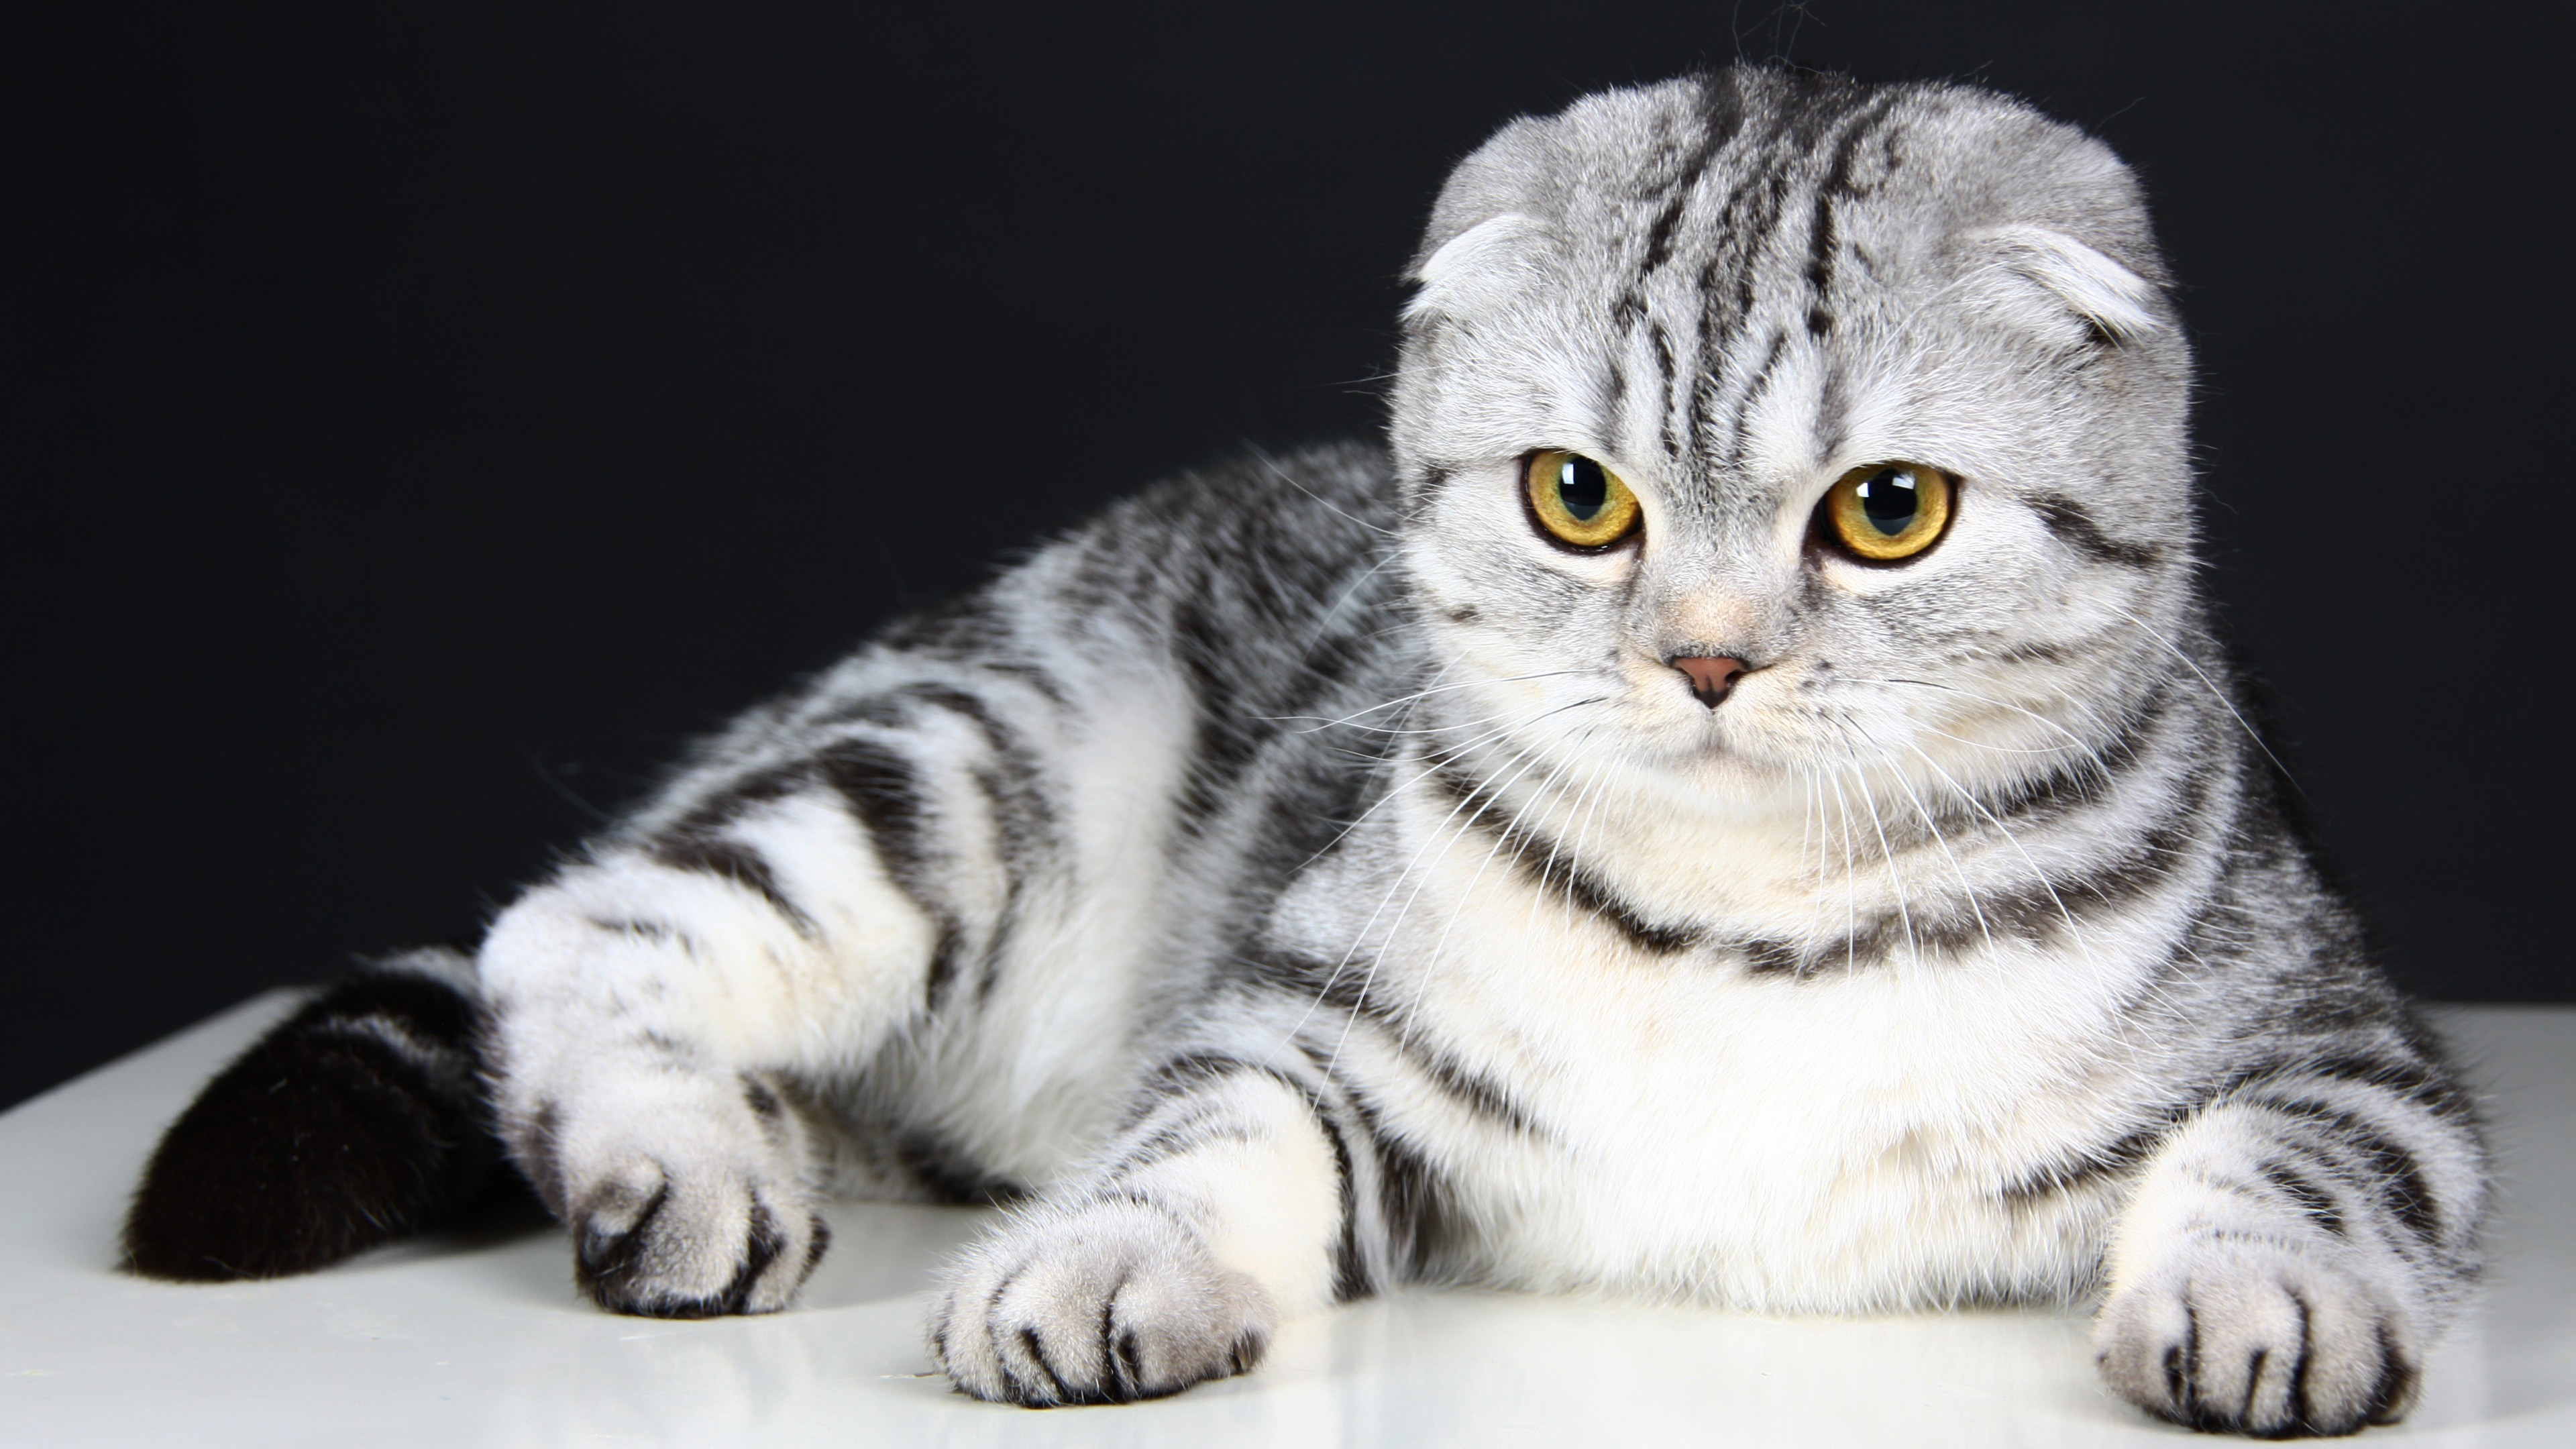 Cute Quotes Wallpapers For Facebook Wallpaper Scottish Fold Cat Kitten Eyes Gray Wool